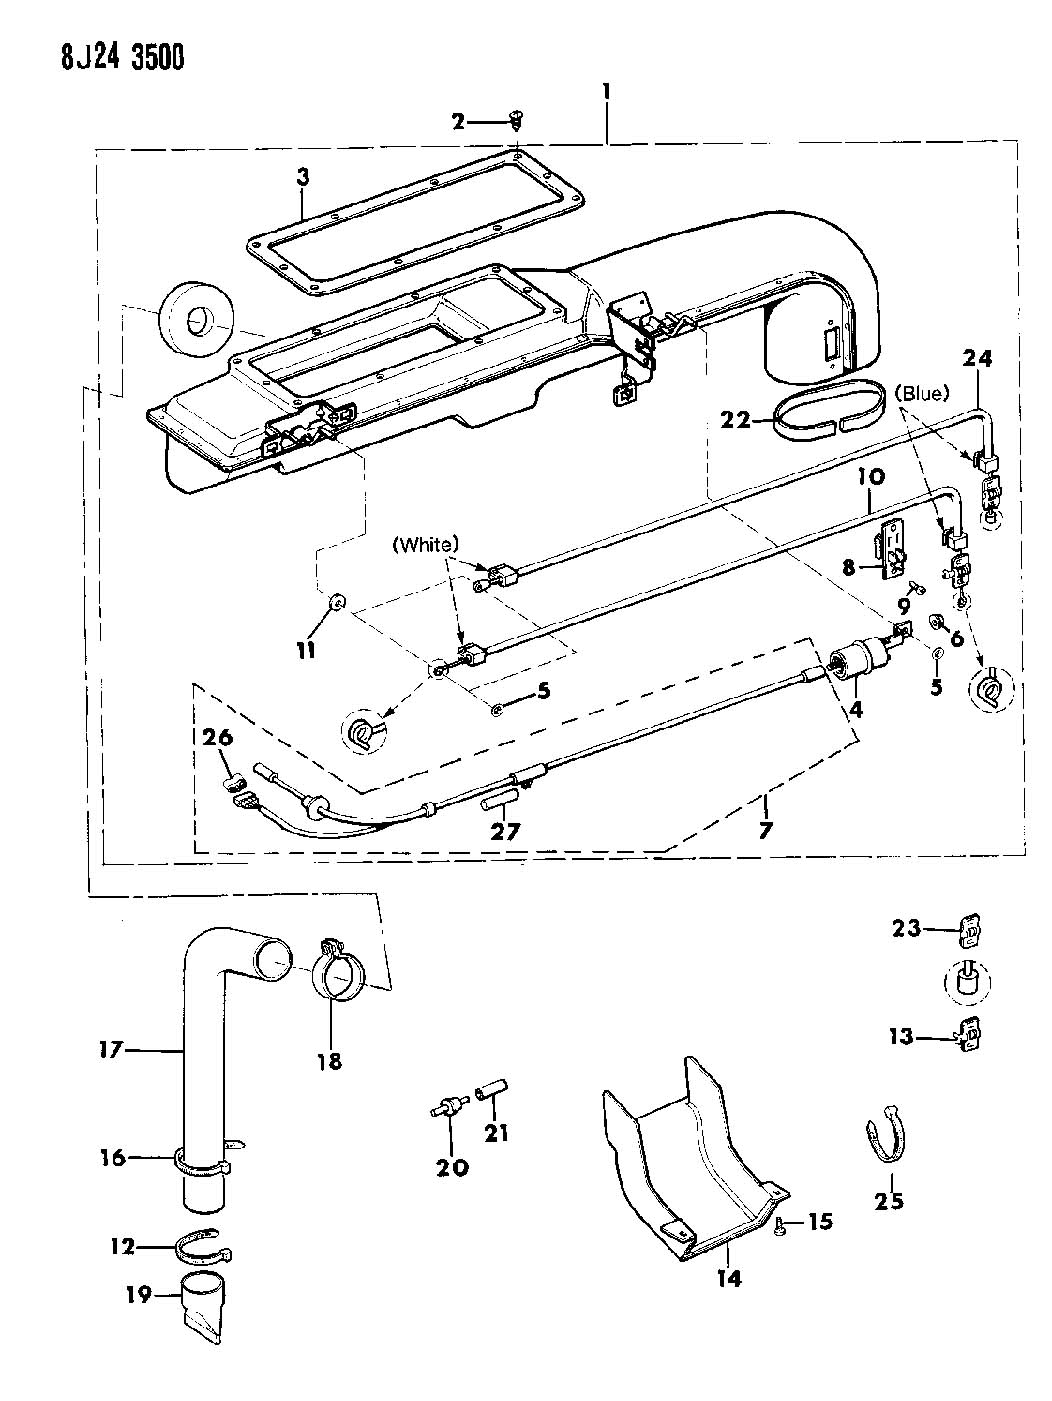 hight resolution of jeep jk heater hose diagram imageresizertool com 1984 mitsubishi mighty max 2 6 wiring diagram jeep liberty ac wiring diagram